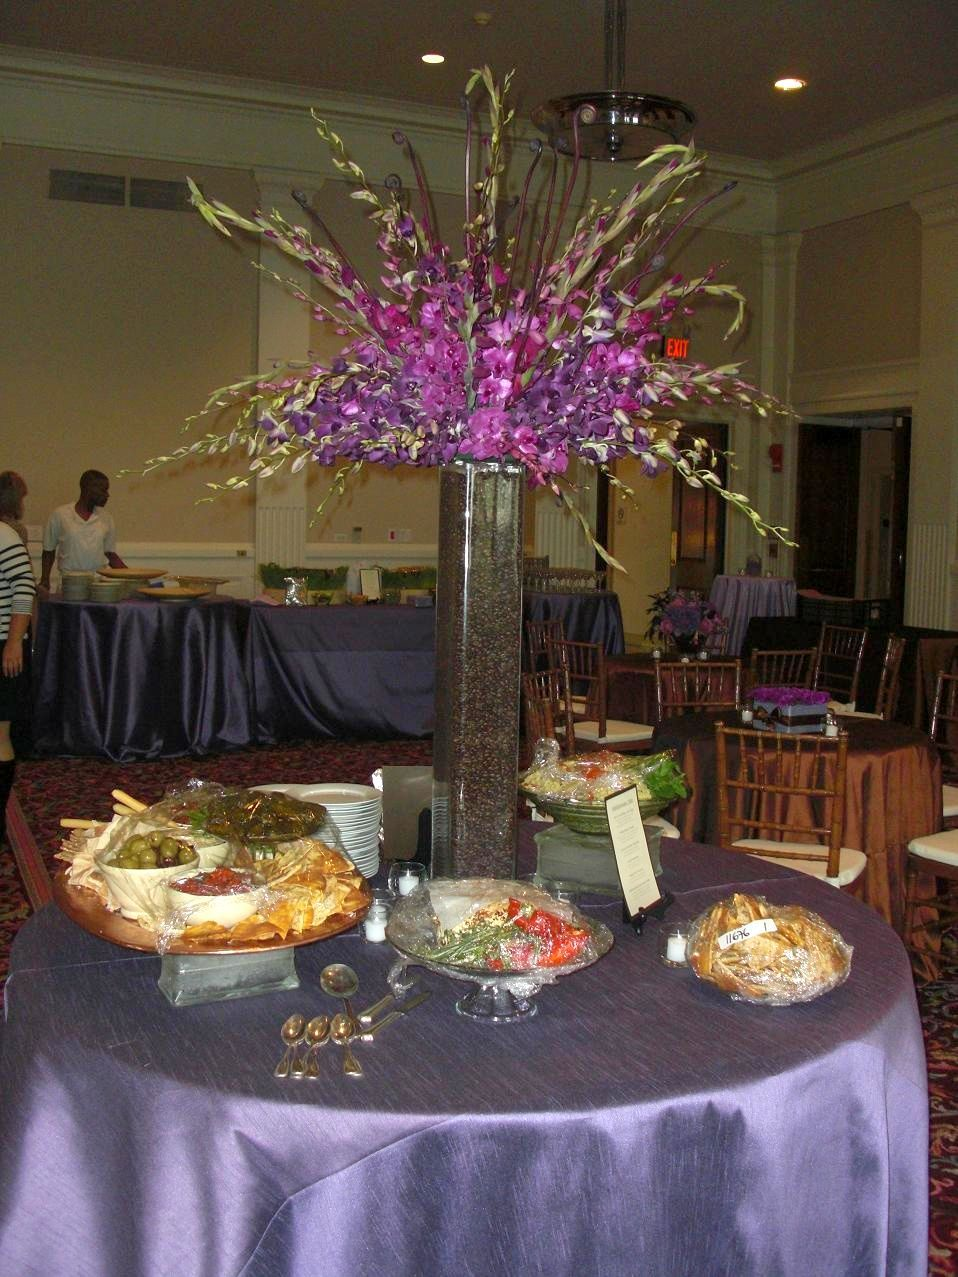 Centerpiece ideas tall wedding centerpiece ideas tall for Center arrangements for weddings